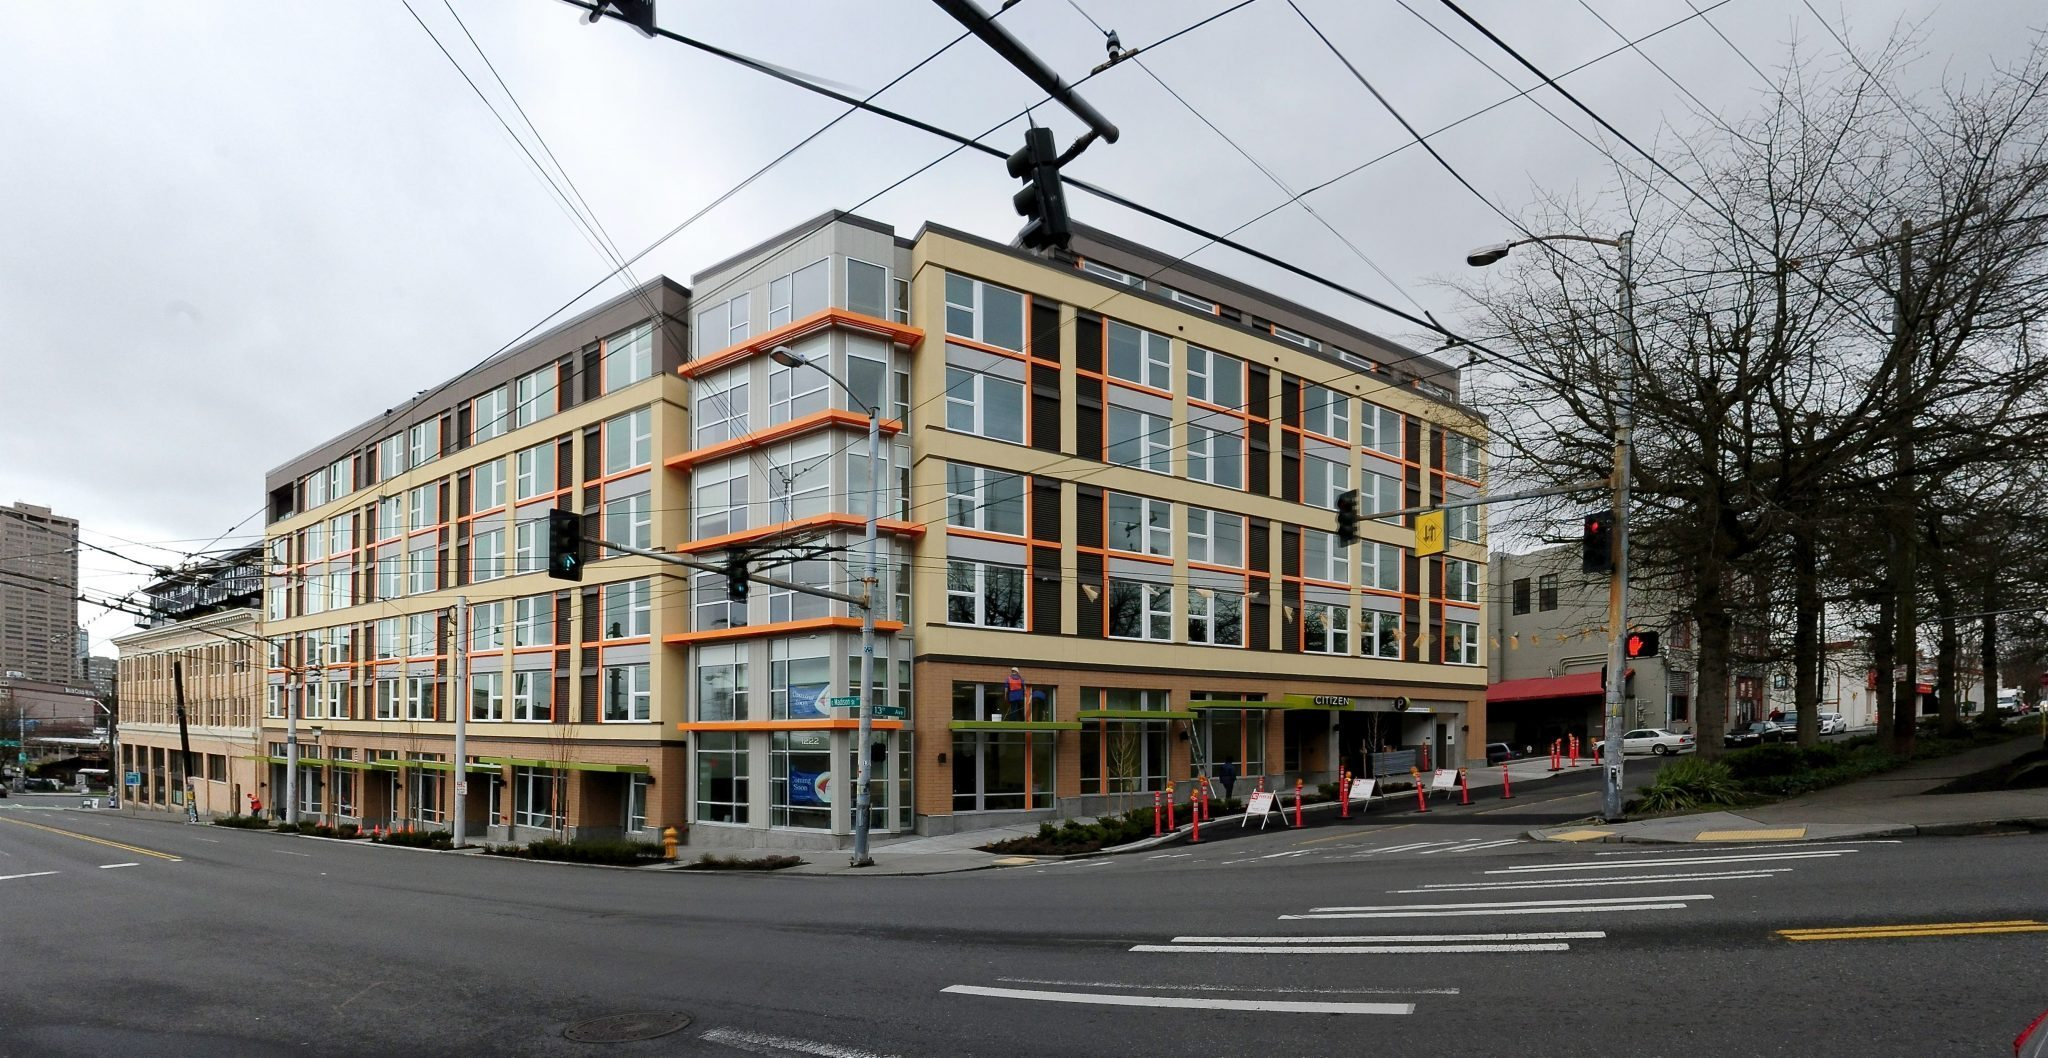 WALLACE PROPERTIES COMPLETES CONSTRUCTION OF CAPITOL HILL APARTMENT COMPLEX  Citizen Built To Achieve LEED Silver Certification. SEATTLE ...